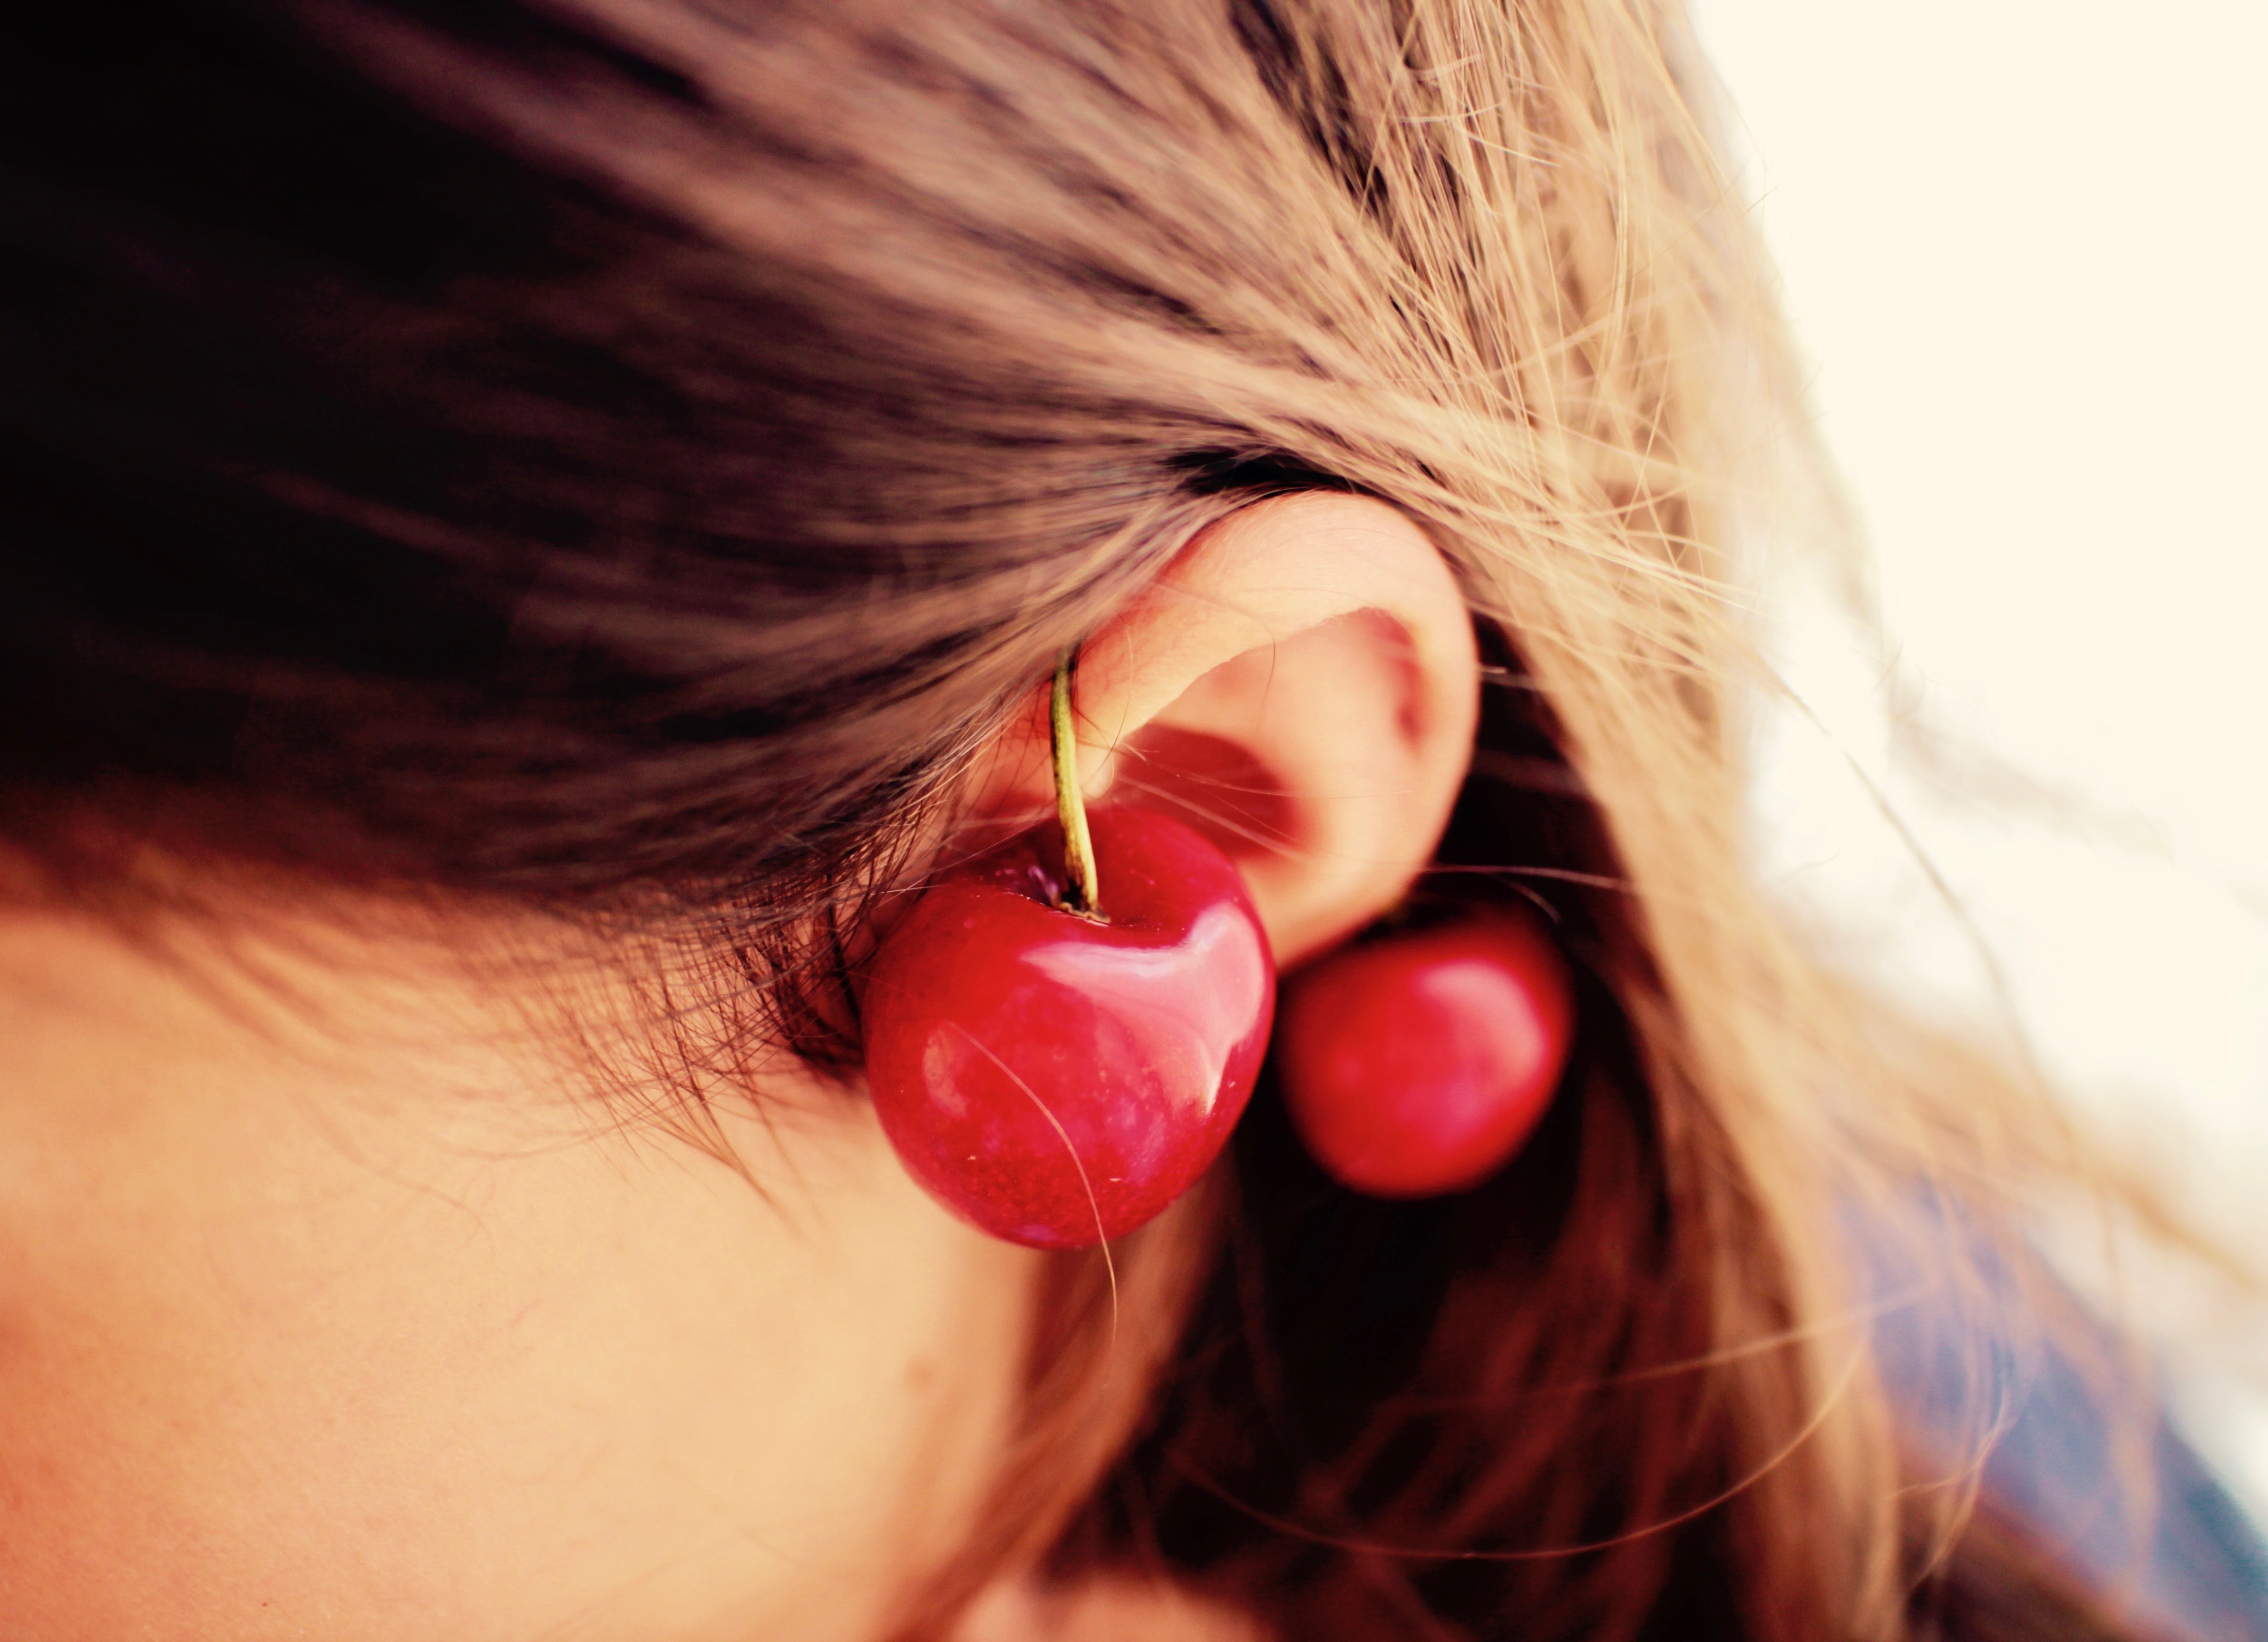 Woman Wearing Red Cherry Earrings